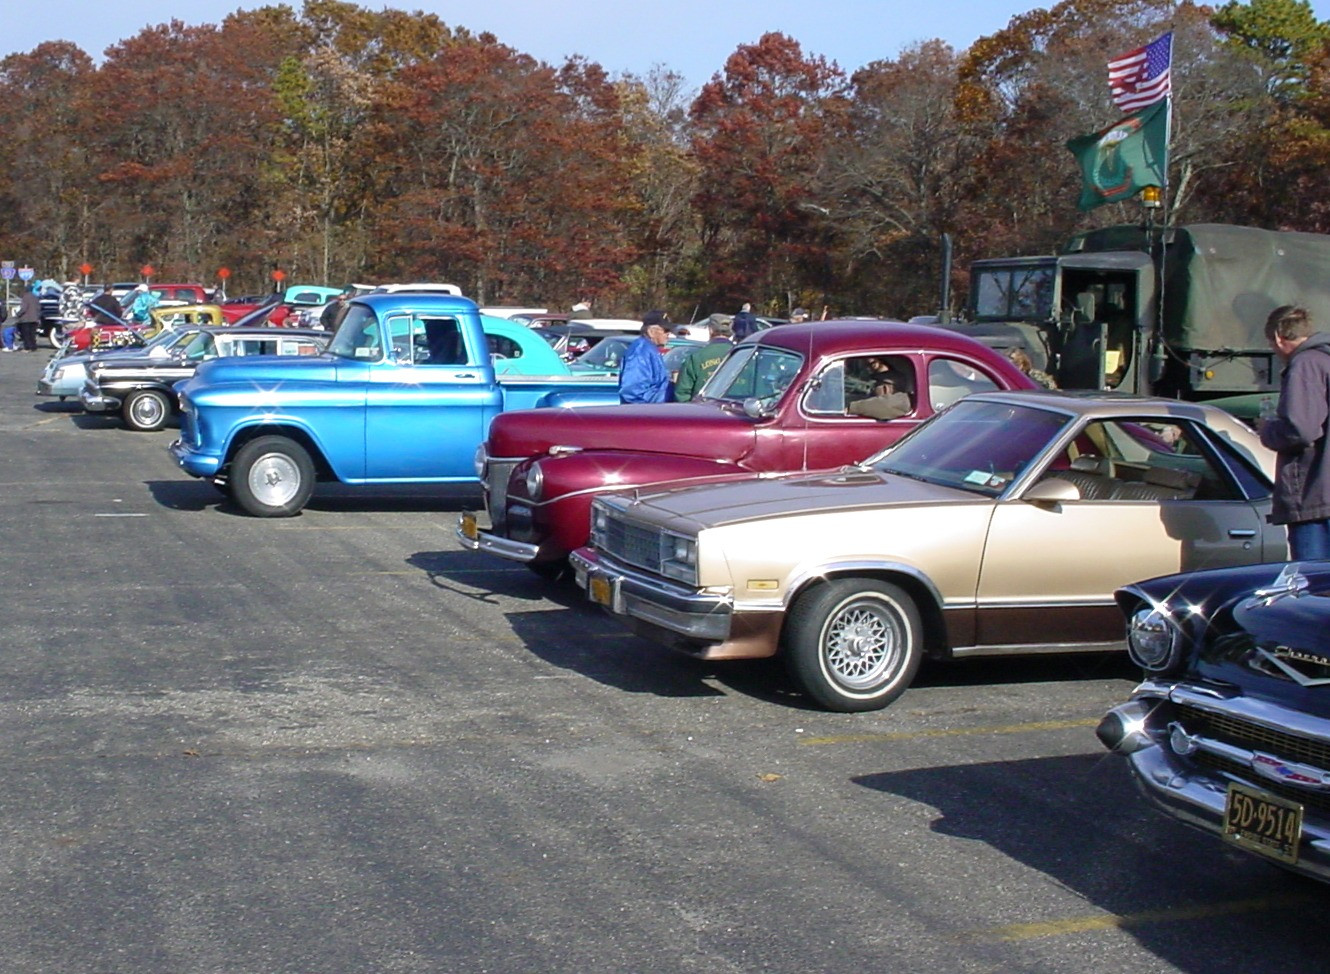 A portion of the vehicles on display